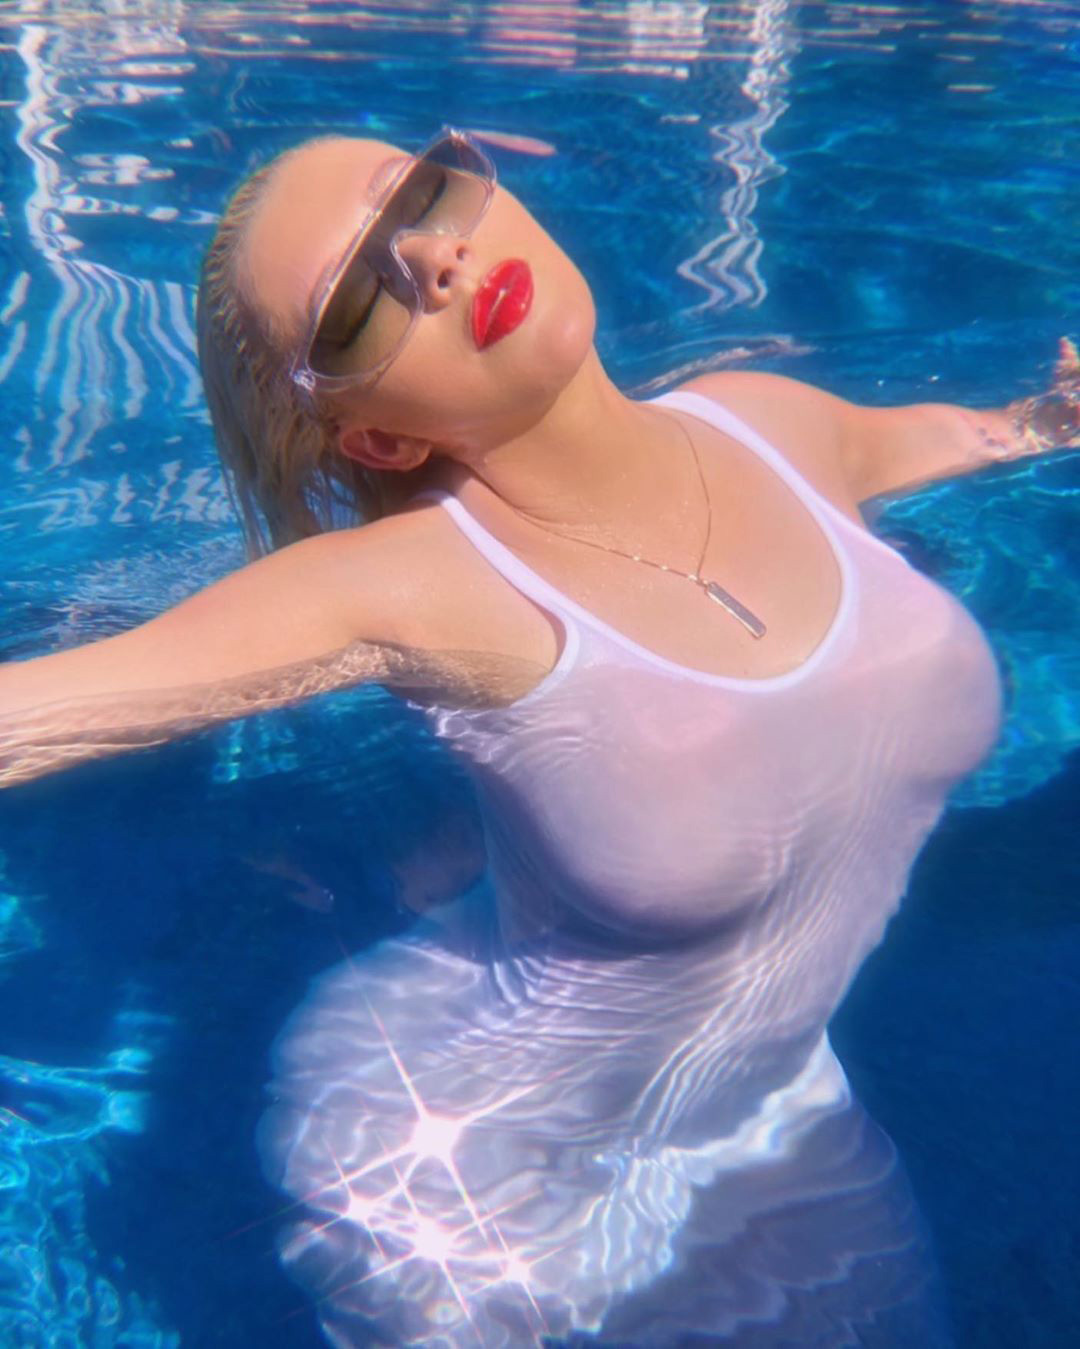 Christina Aguliera Shouts Out 'WAP' Music Video as She Wears Skin-Tight White Dress in Her Pool